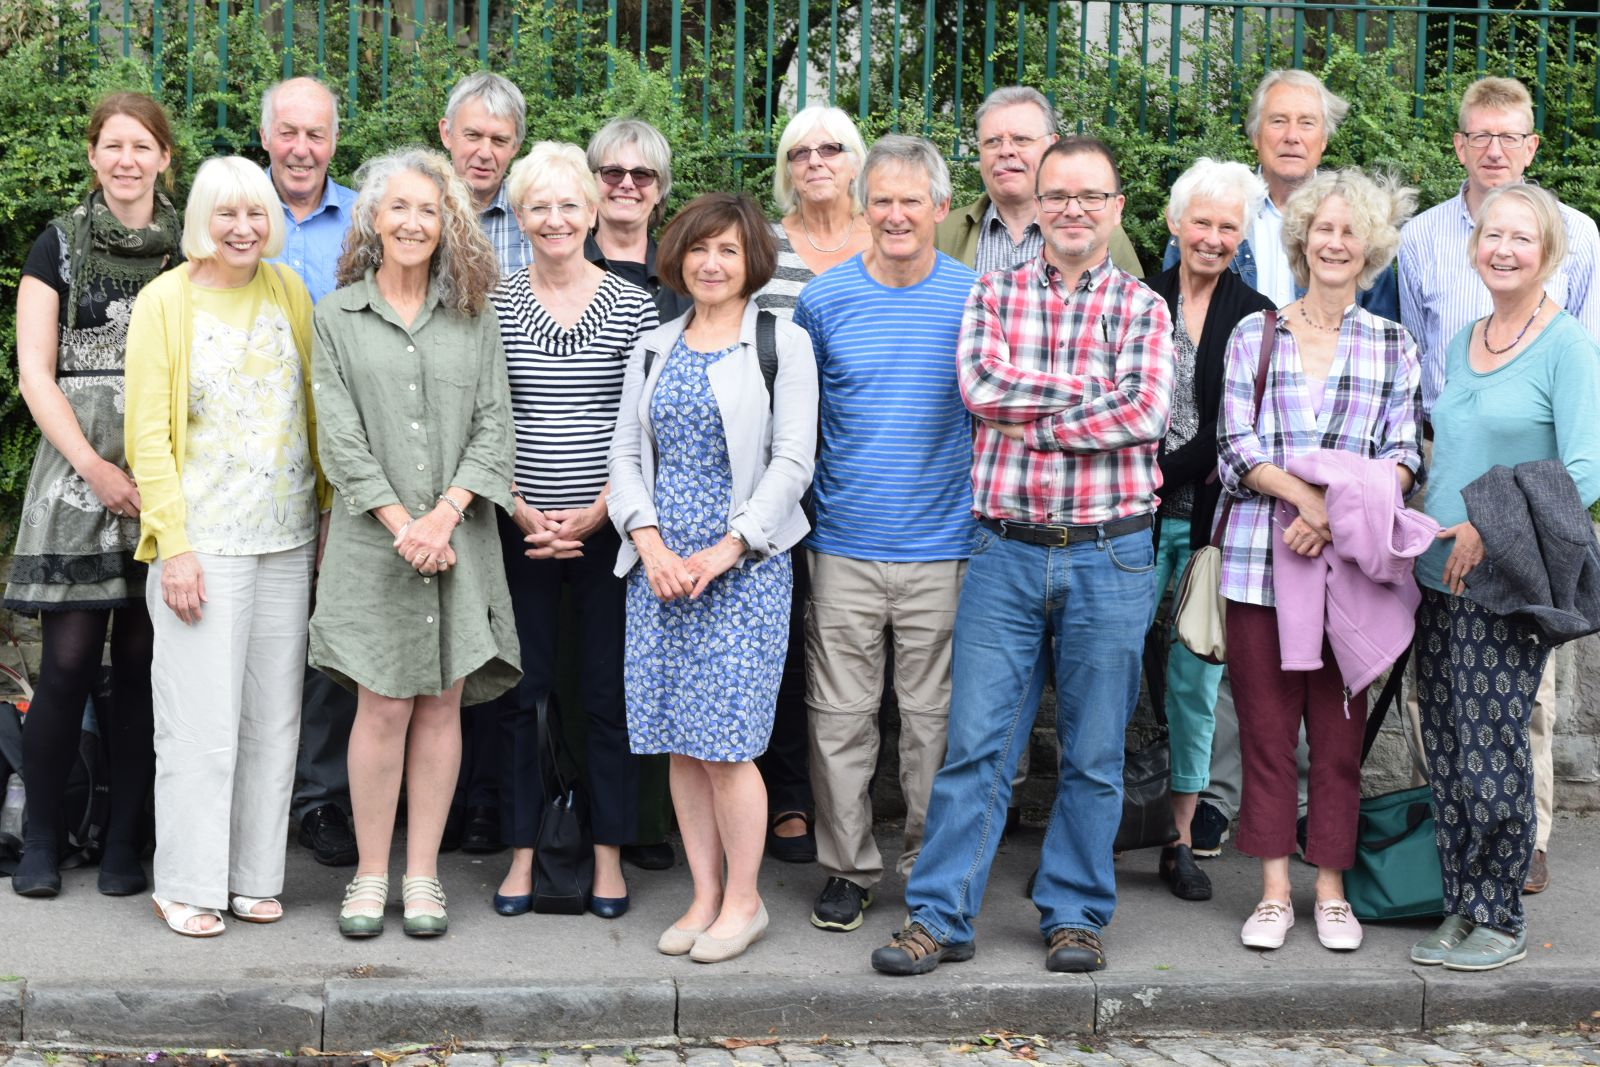 A group of community researchers poses together